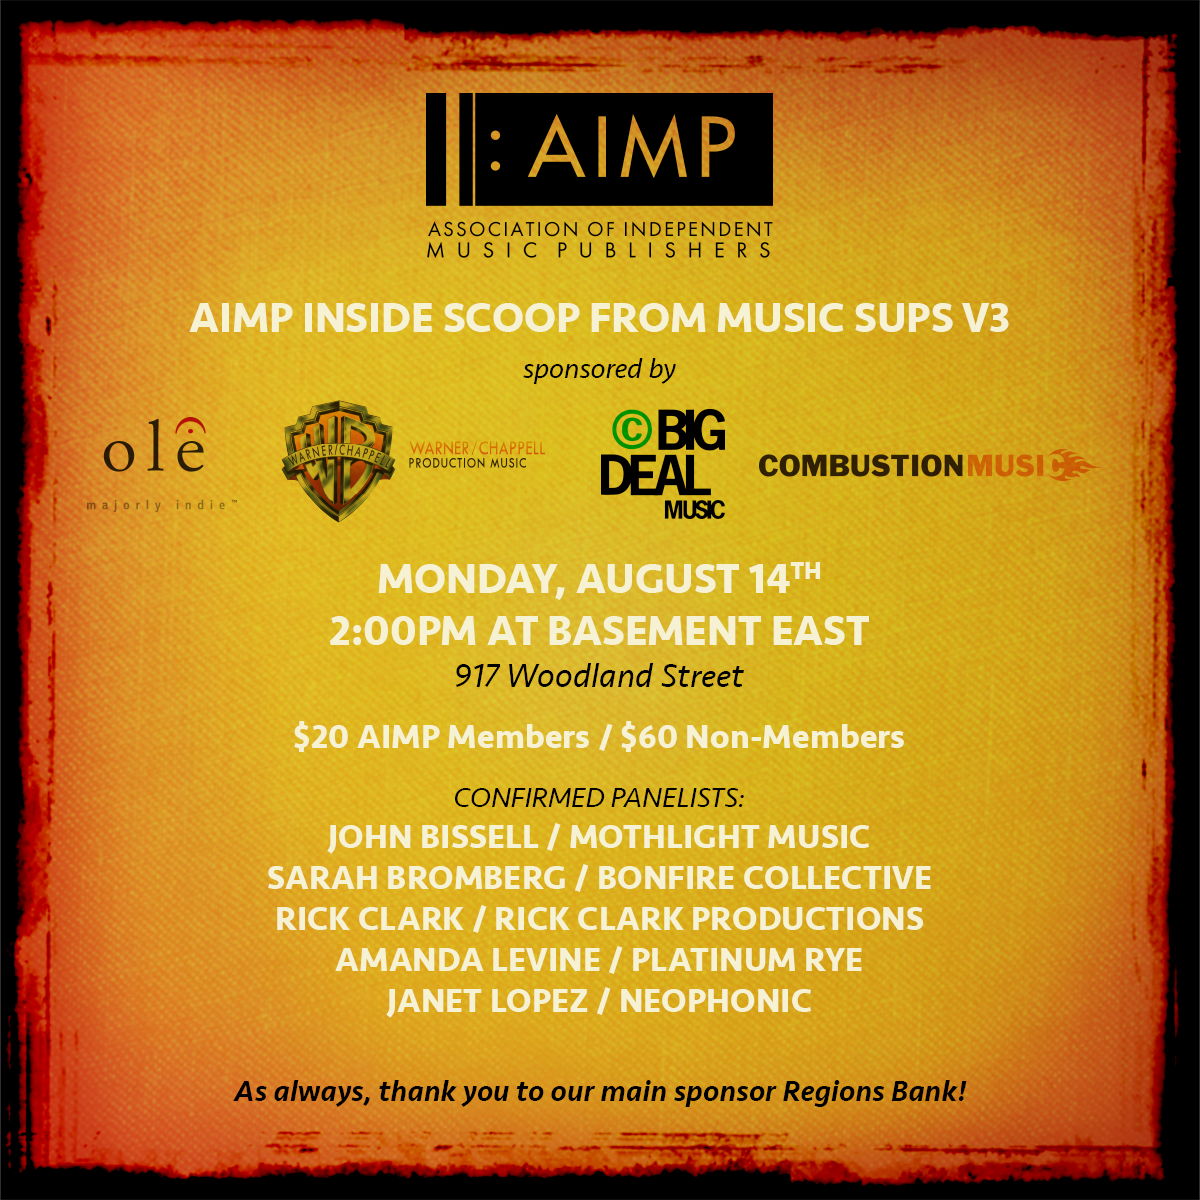 AIMP : Events - Inside Scoop From Music Sups V3